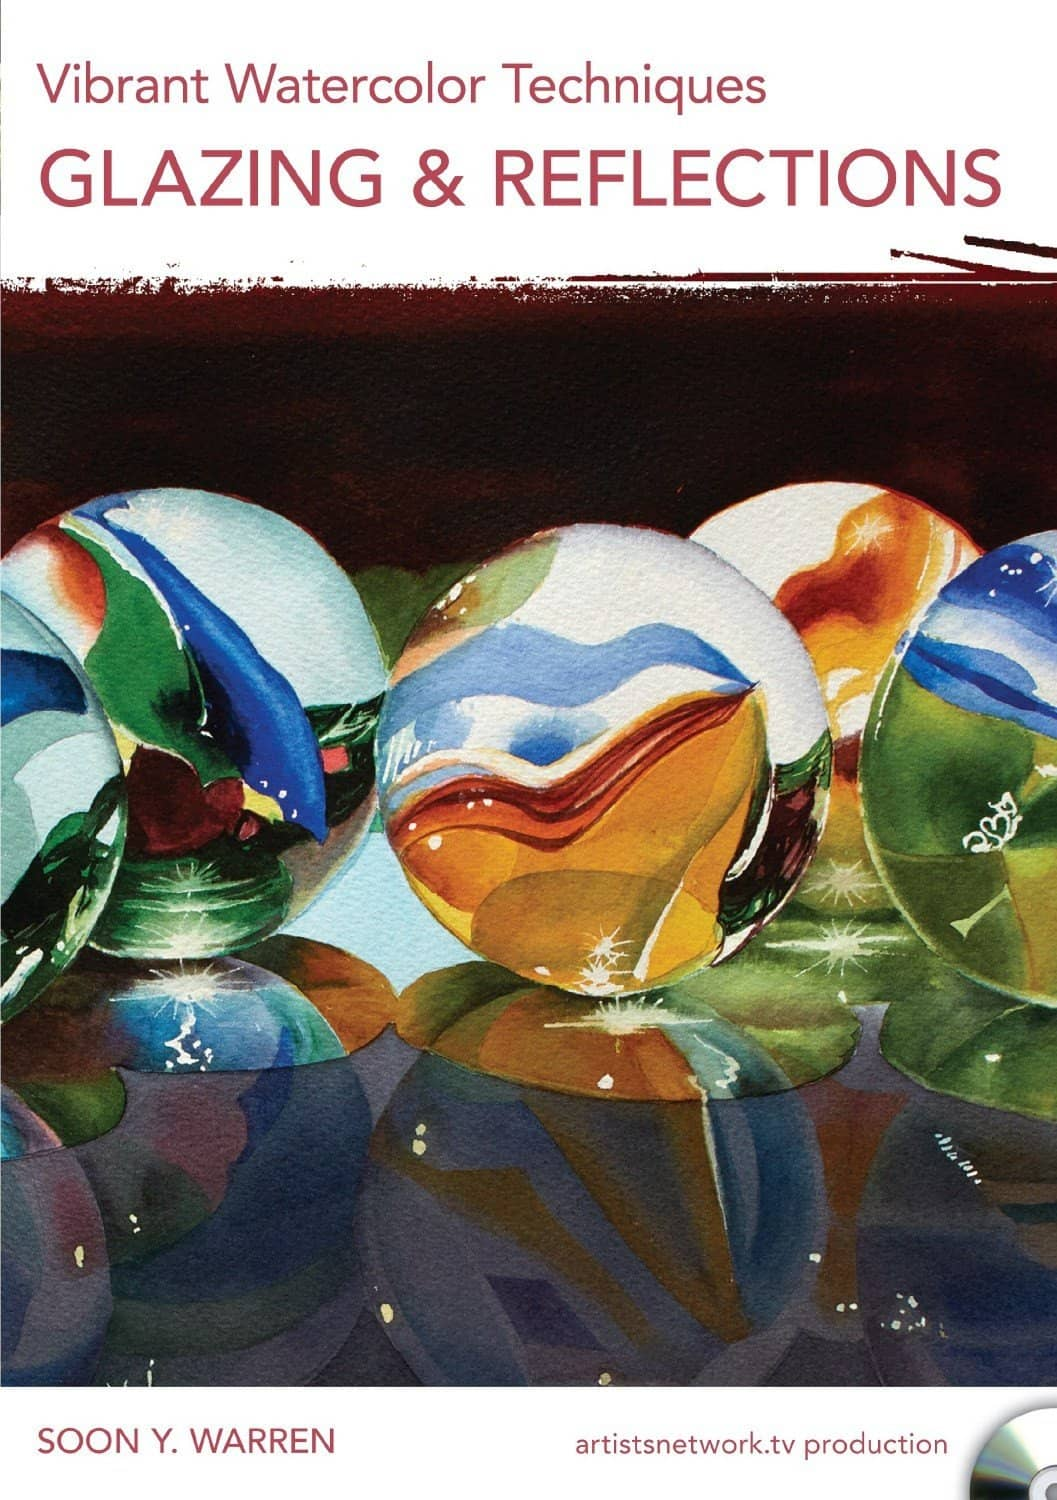 Vibrant Watercolor Techniques - Glazing & Reflections with Soon Y. Warren